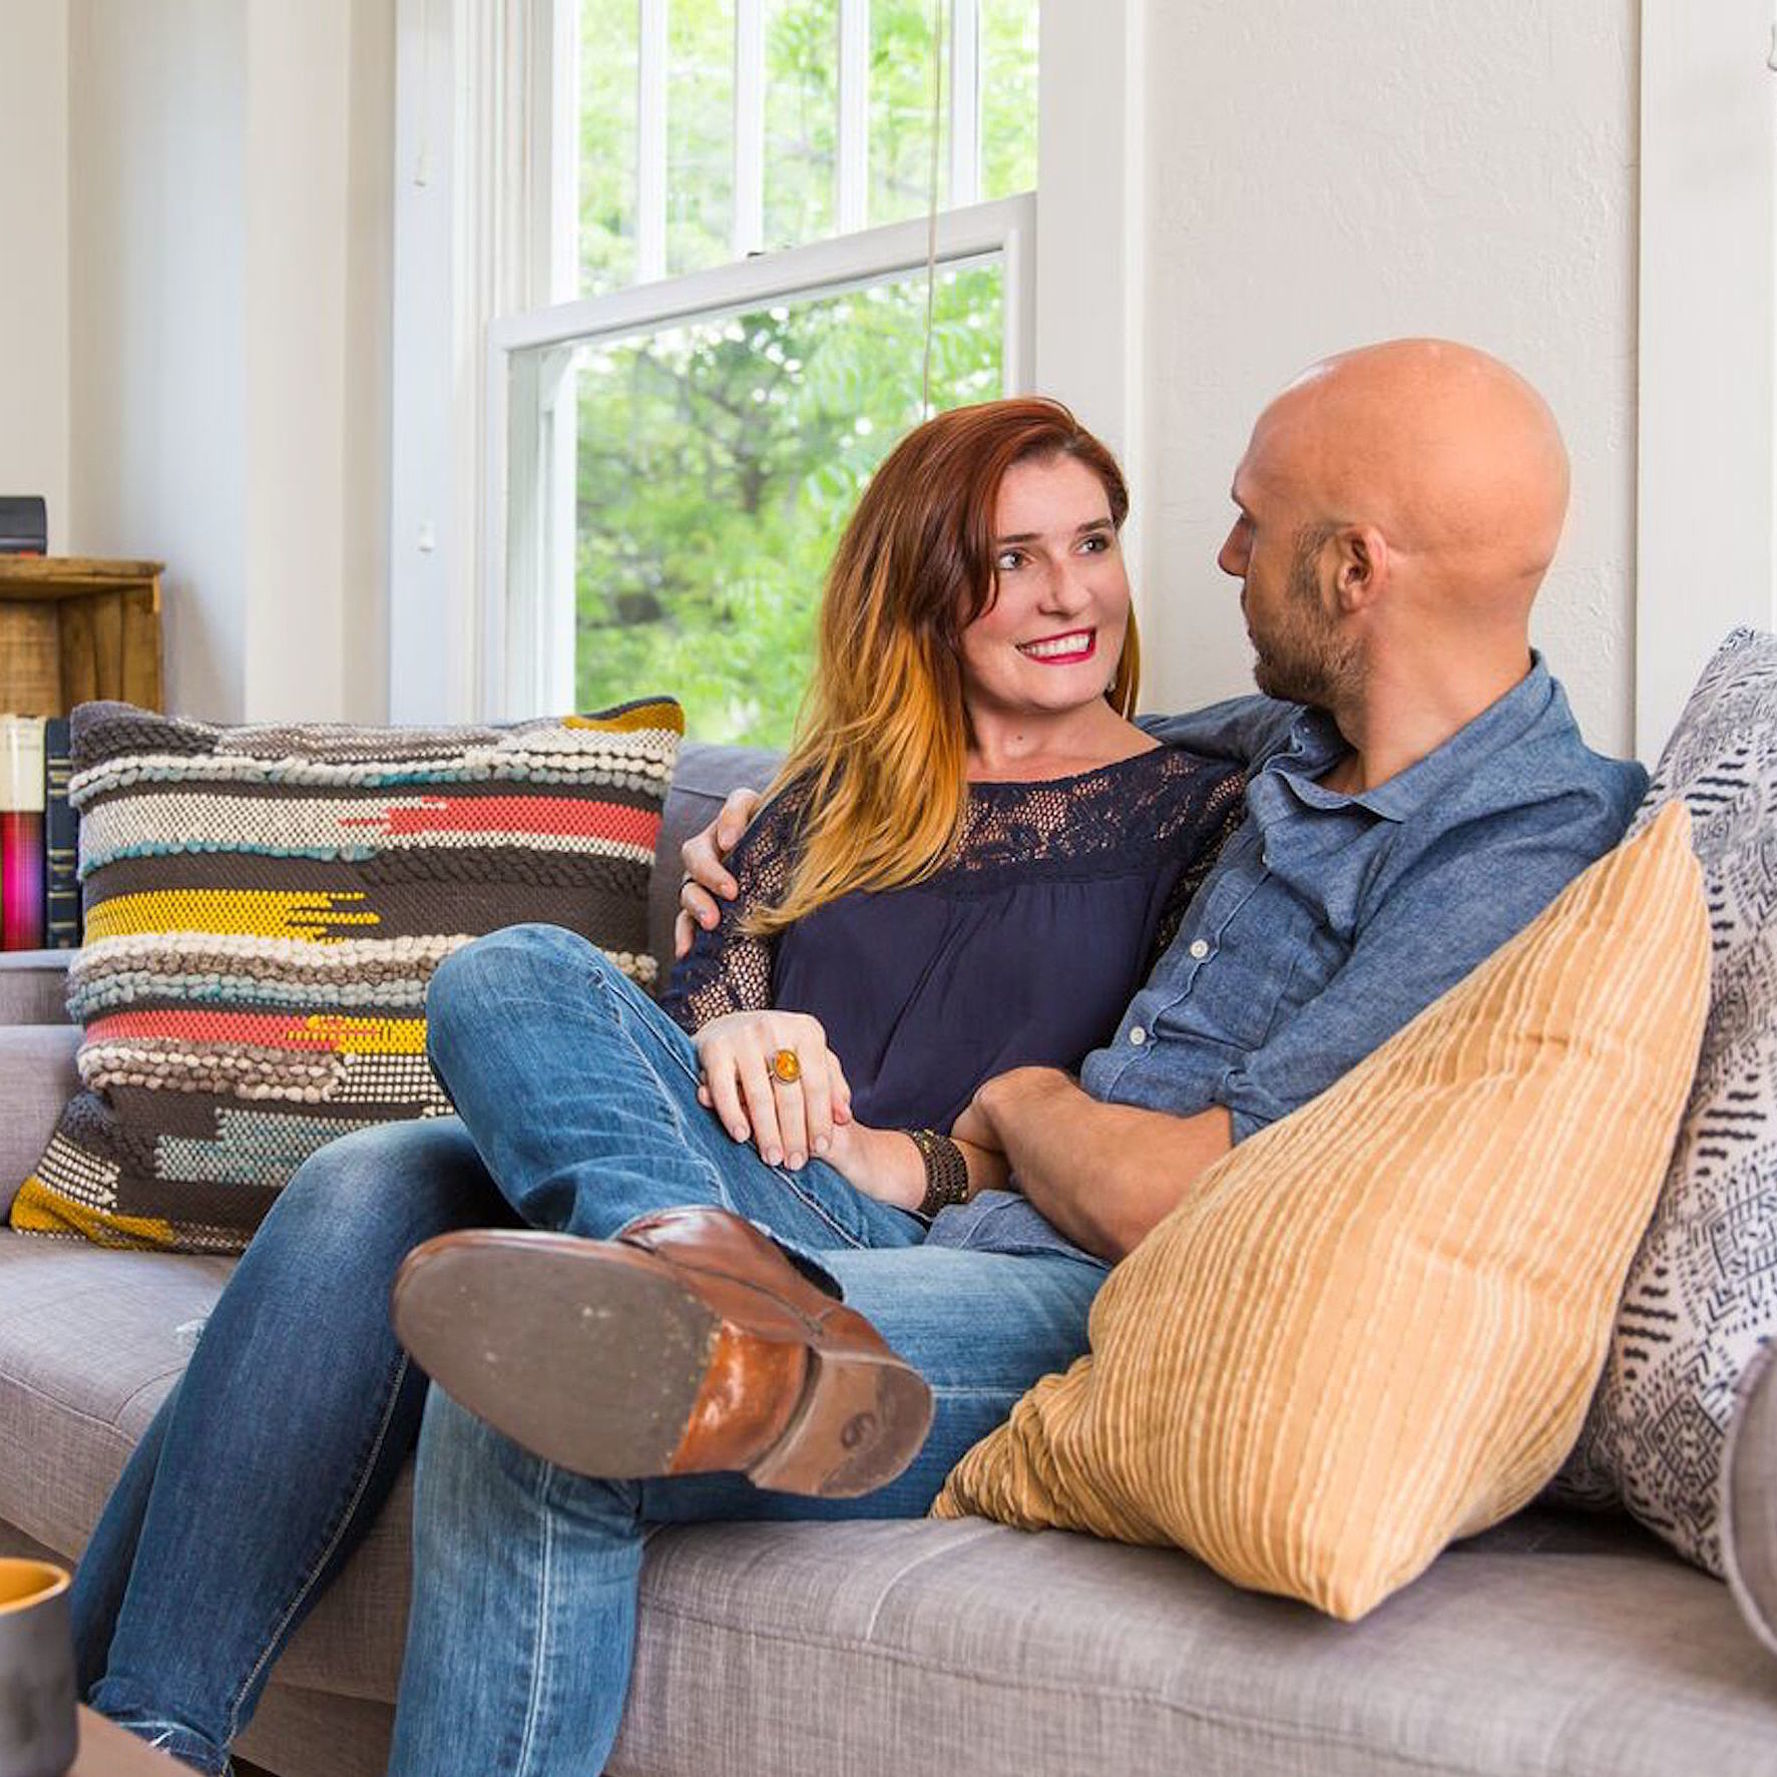 couple looking at each other on couch